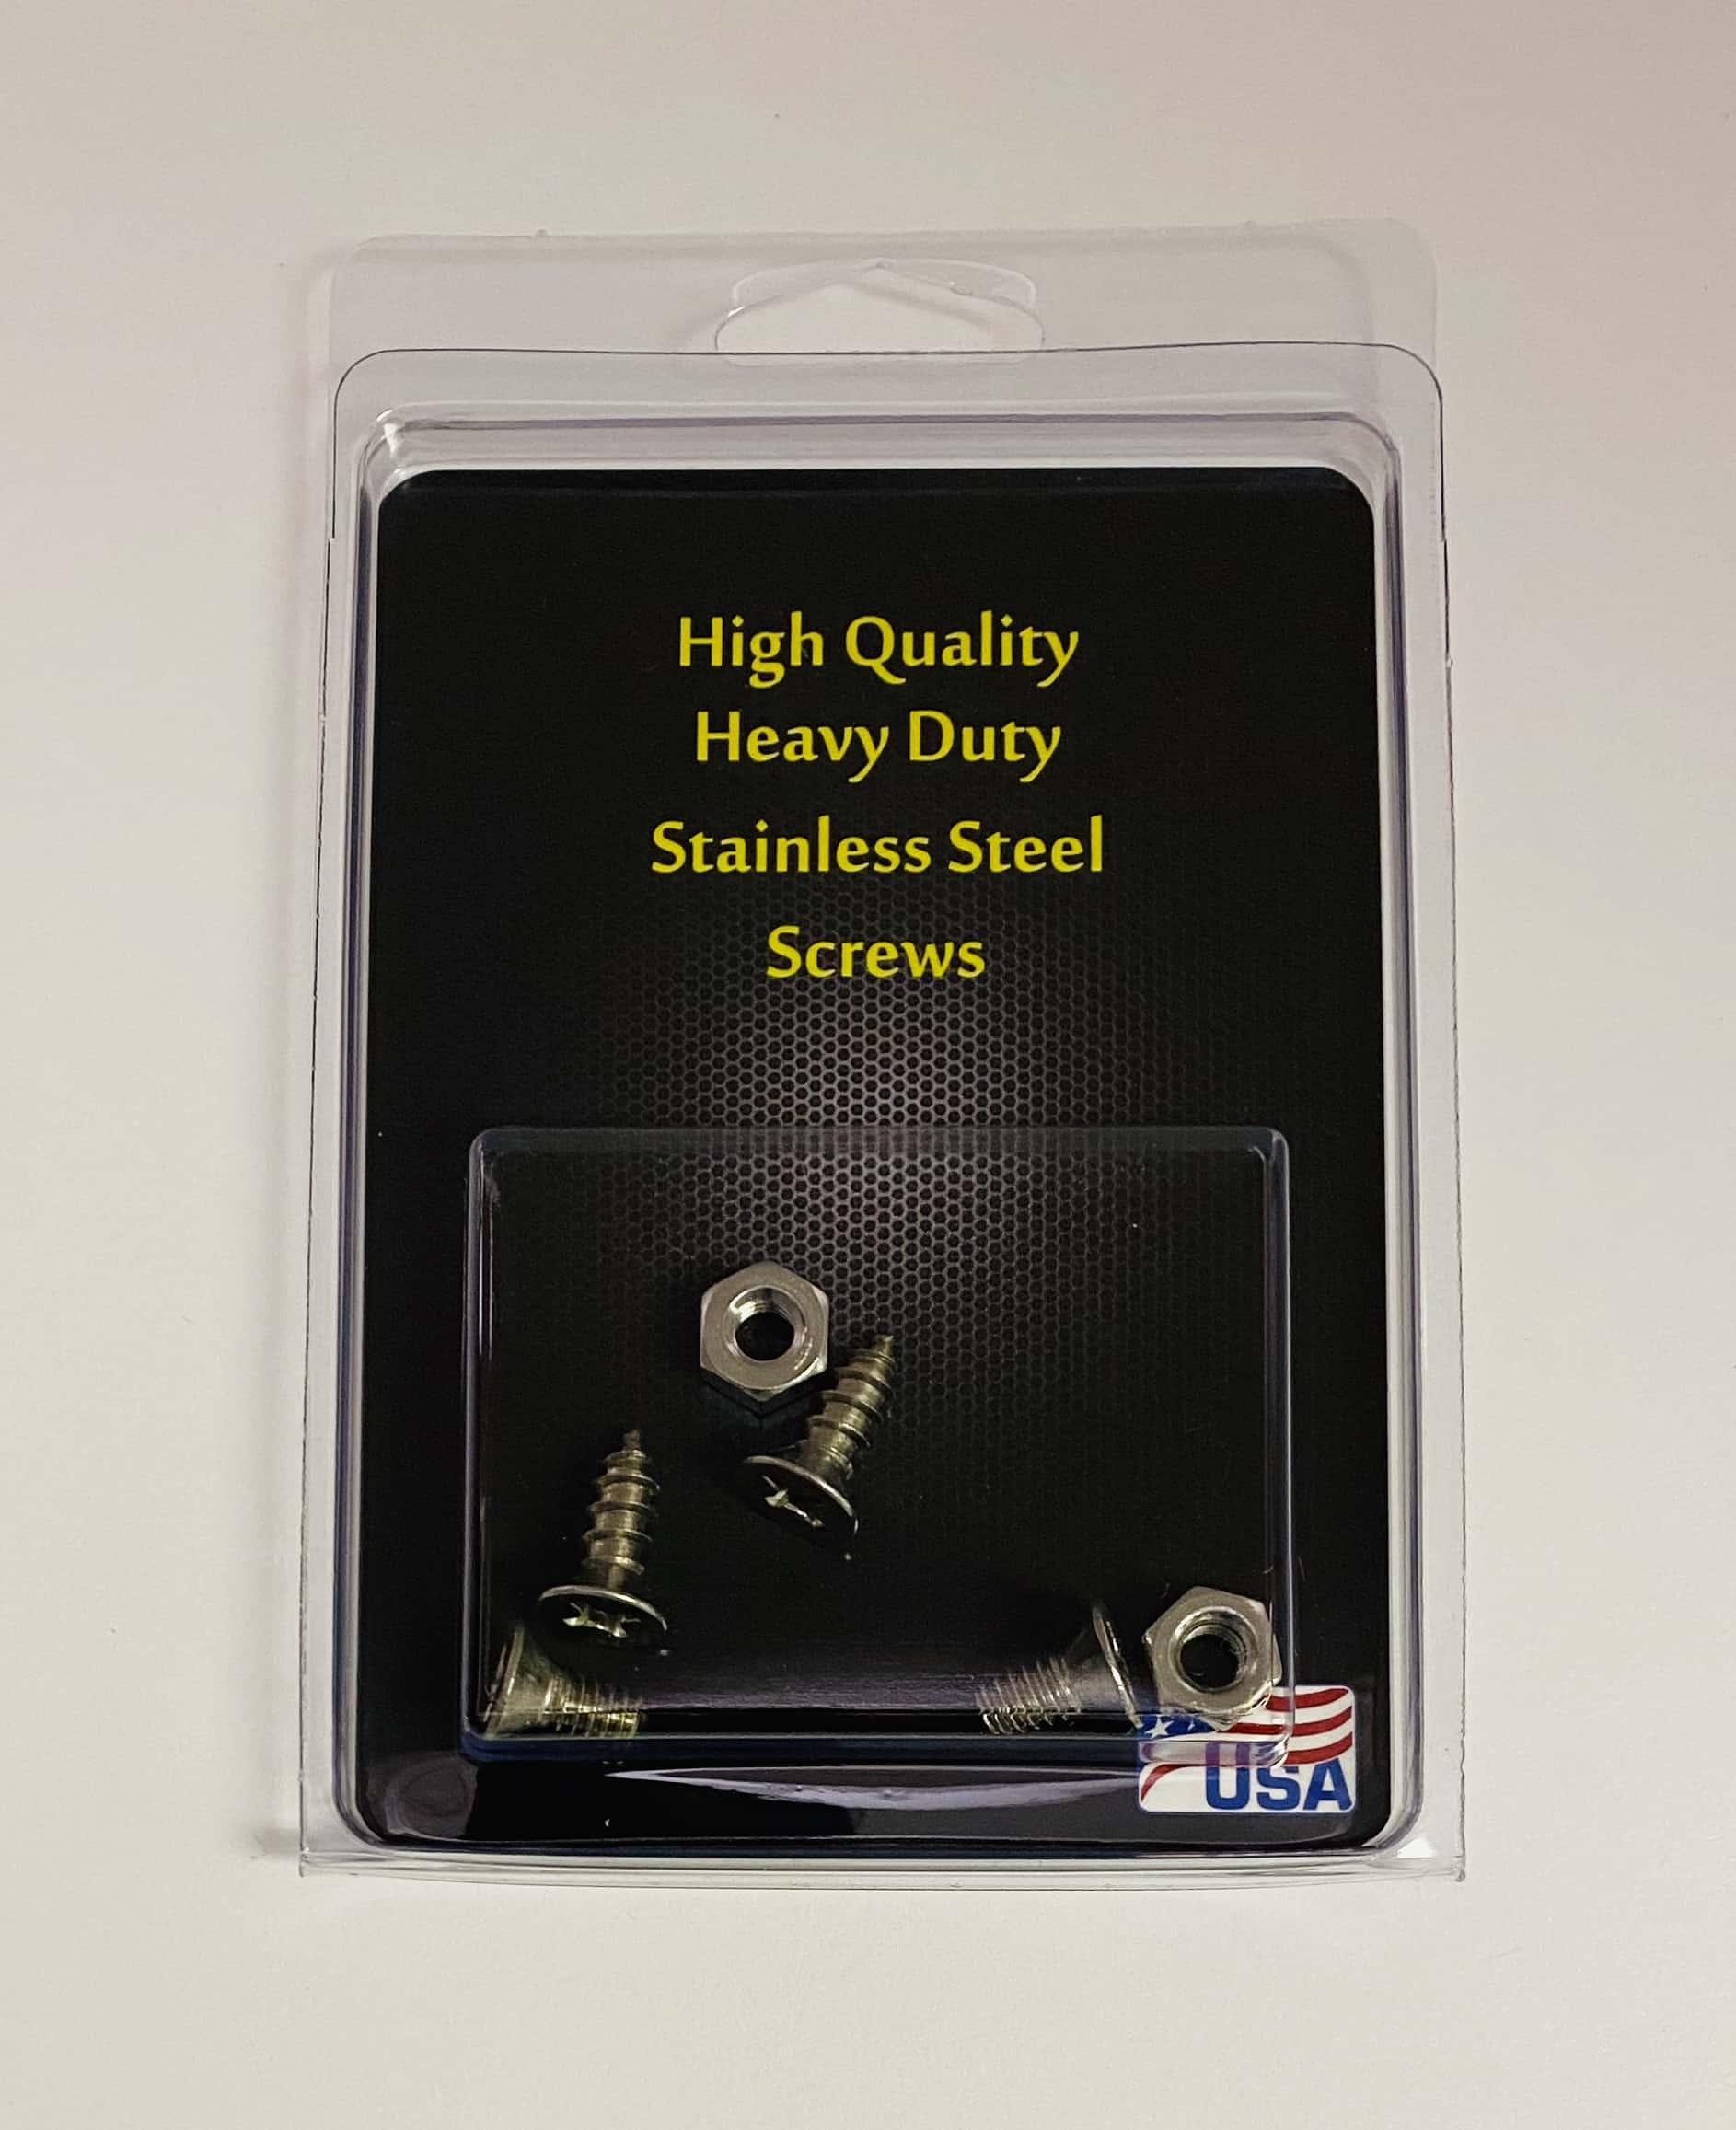 Stainless steel screws - Steel (for CNC frames only)